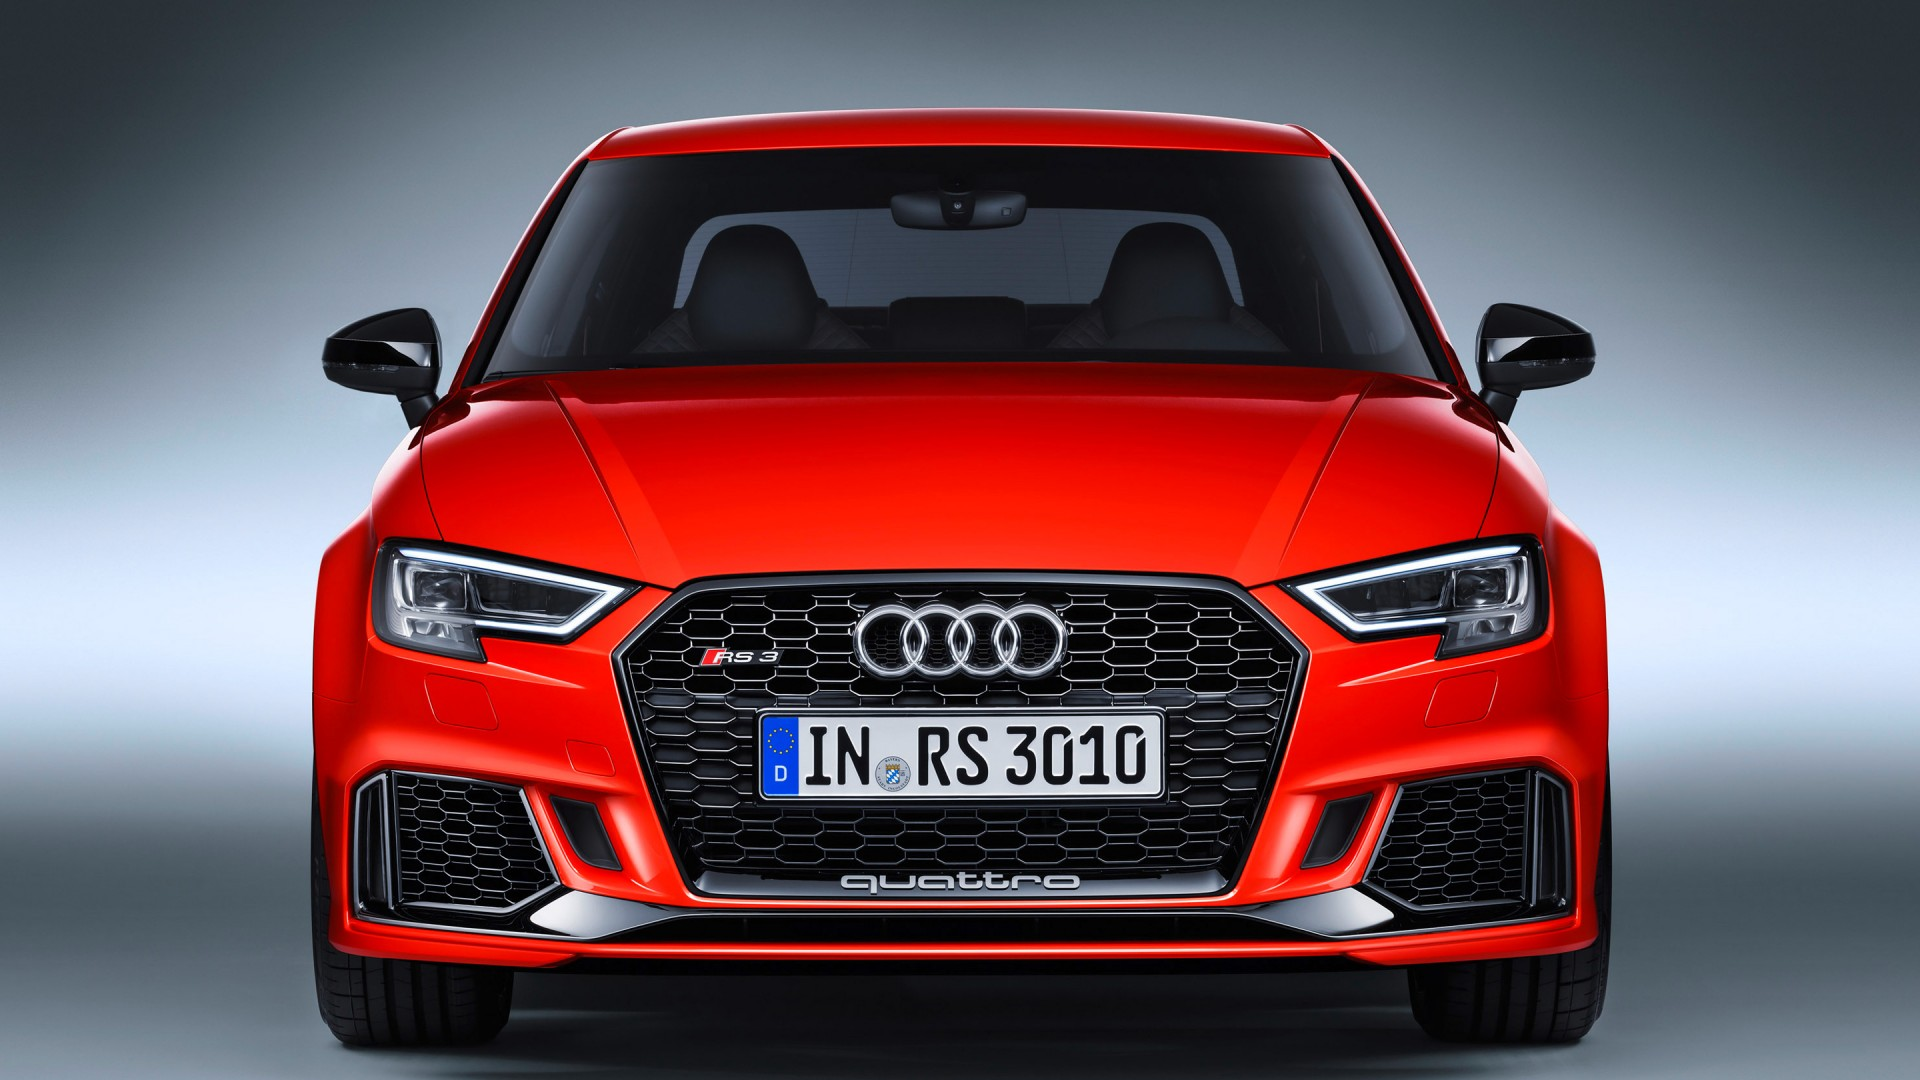 2017 Audi RS3 Wallpaper | HD Car Wallpapers | ID #7036